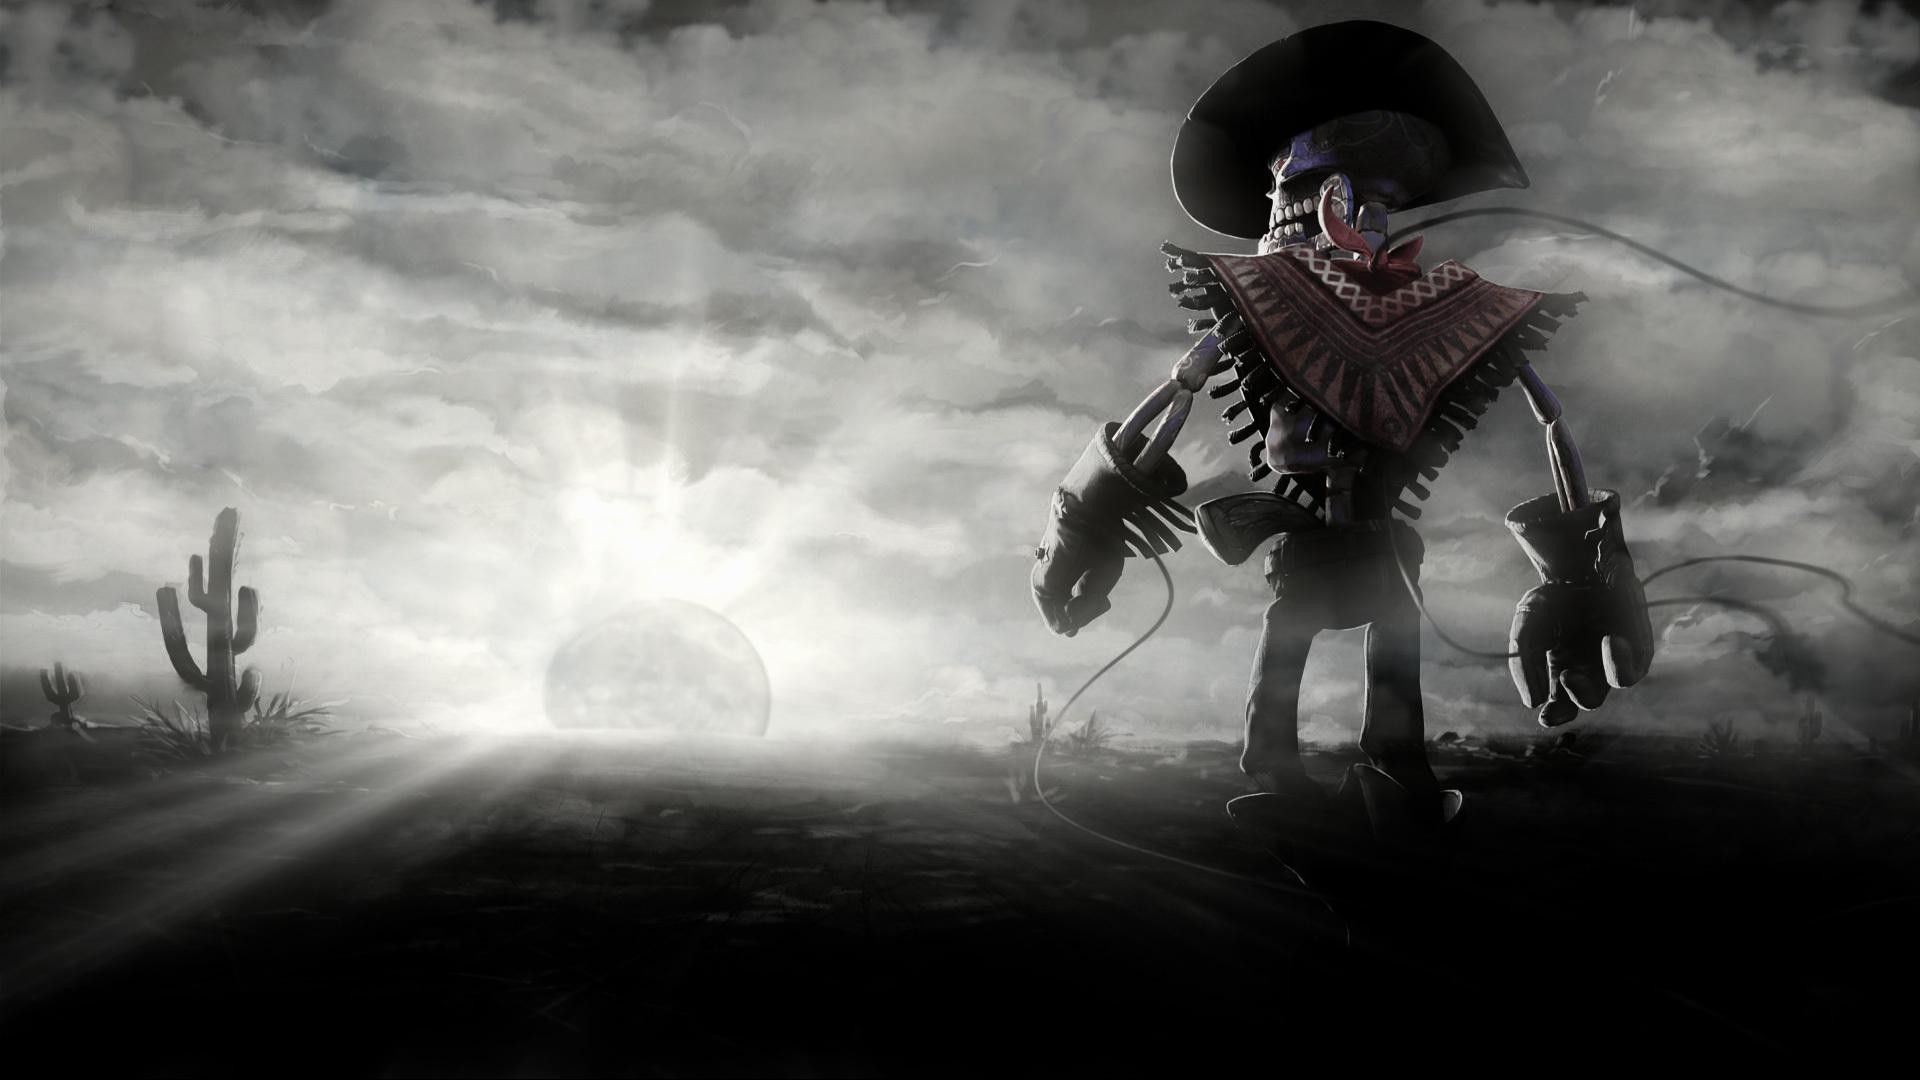 1920x1080 Cowboy and Western Desktop Wallpaper (67+ images)